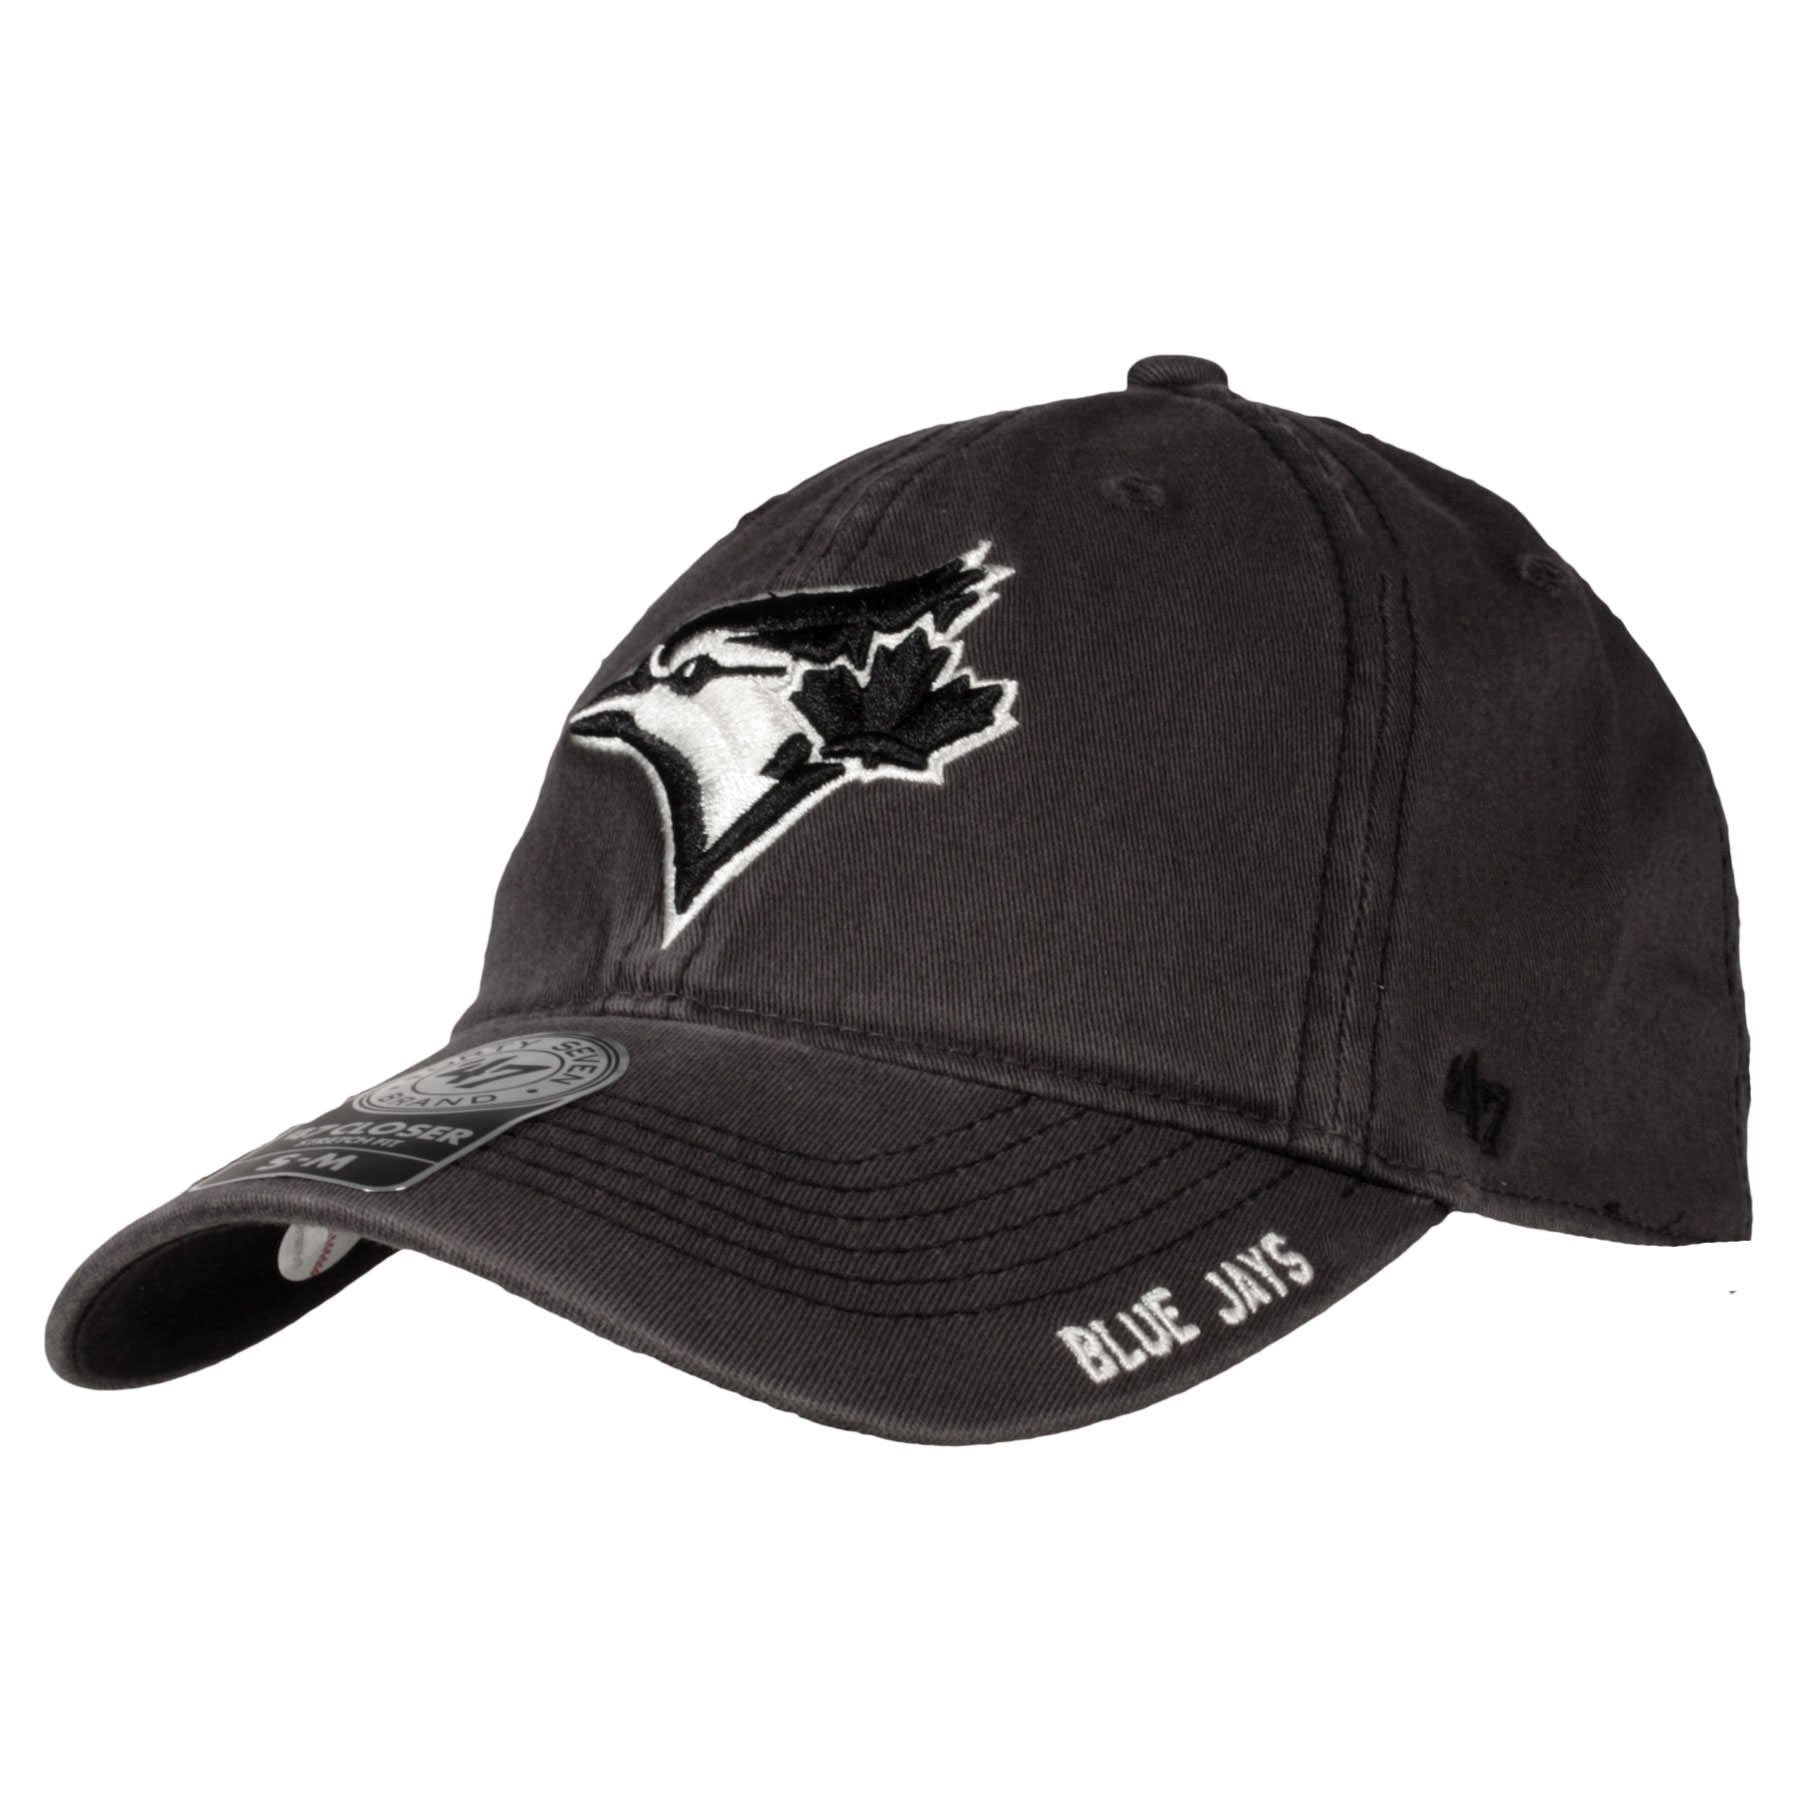 new styles 2ca5d 3083f france where to buy blue jays hat in vancouver 954c4 7a6b6